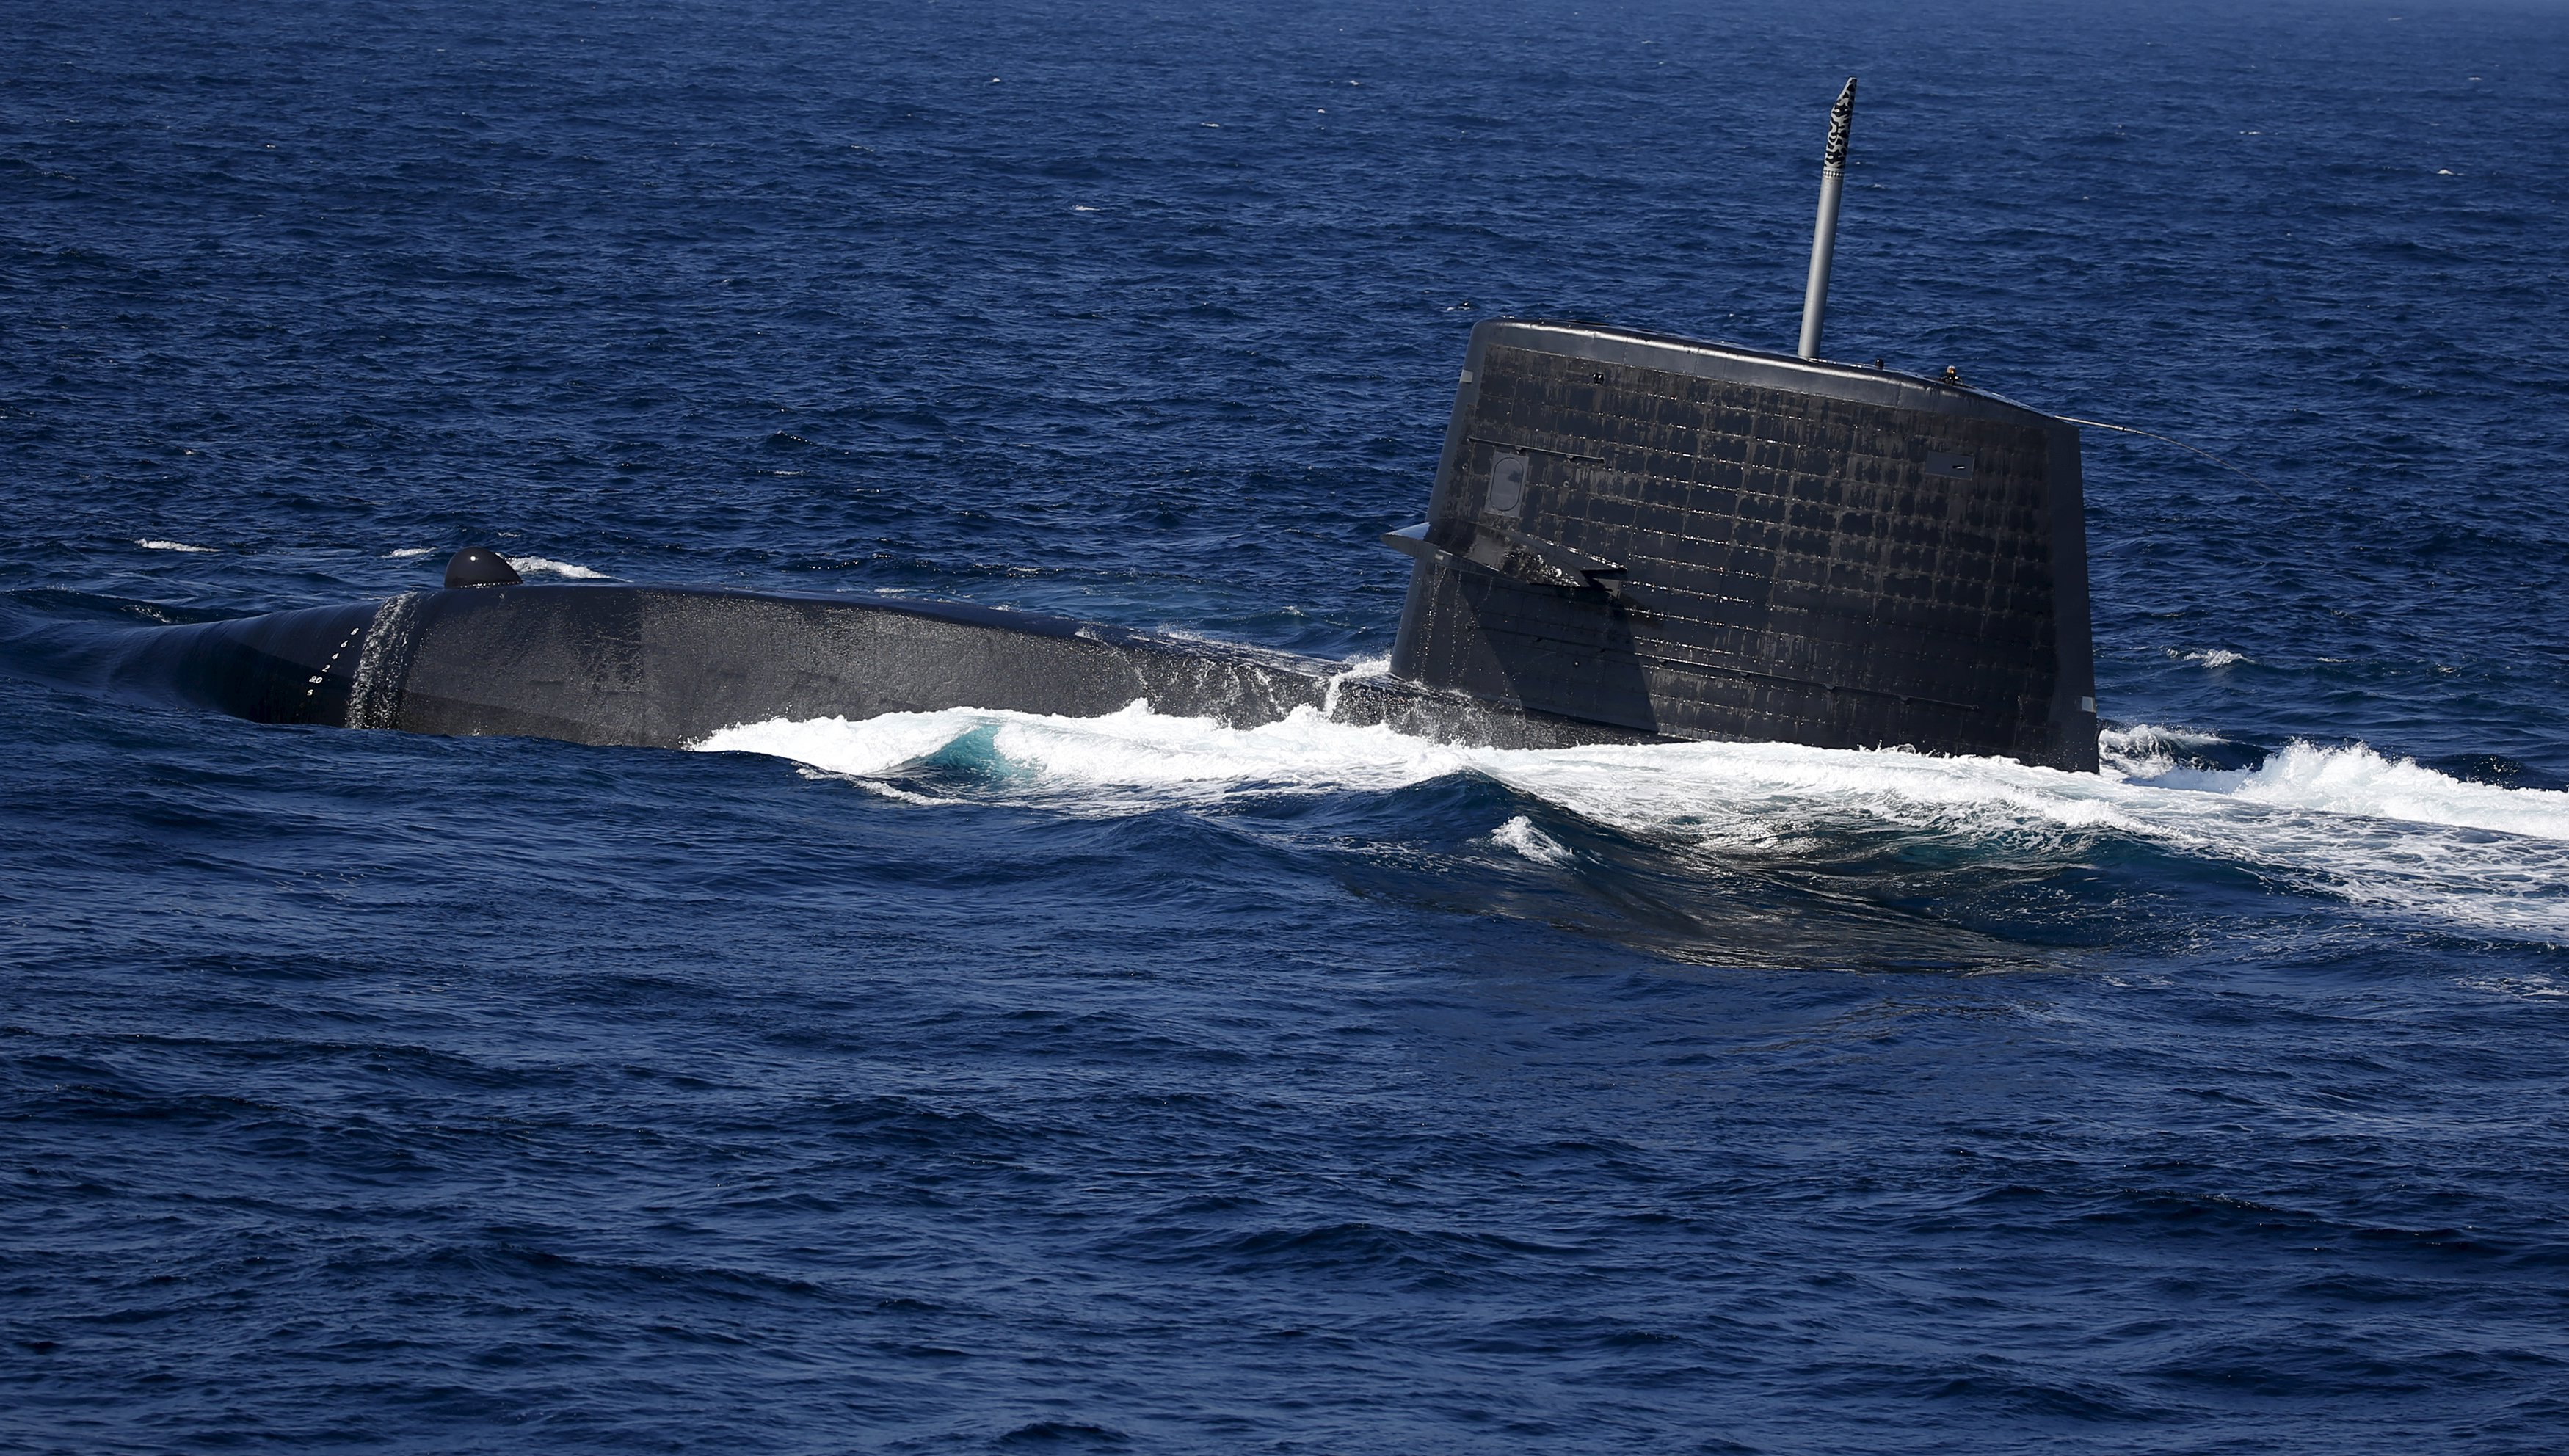 The Uzushio submarine of the Japan Maritime Self-Defense Force (JMSDF) bursts to the surface during a fleet review at Sagami Bay, off Yokosuka, south of Tokyo October 18, 2015. Photo: Reuters